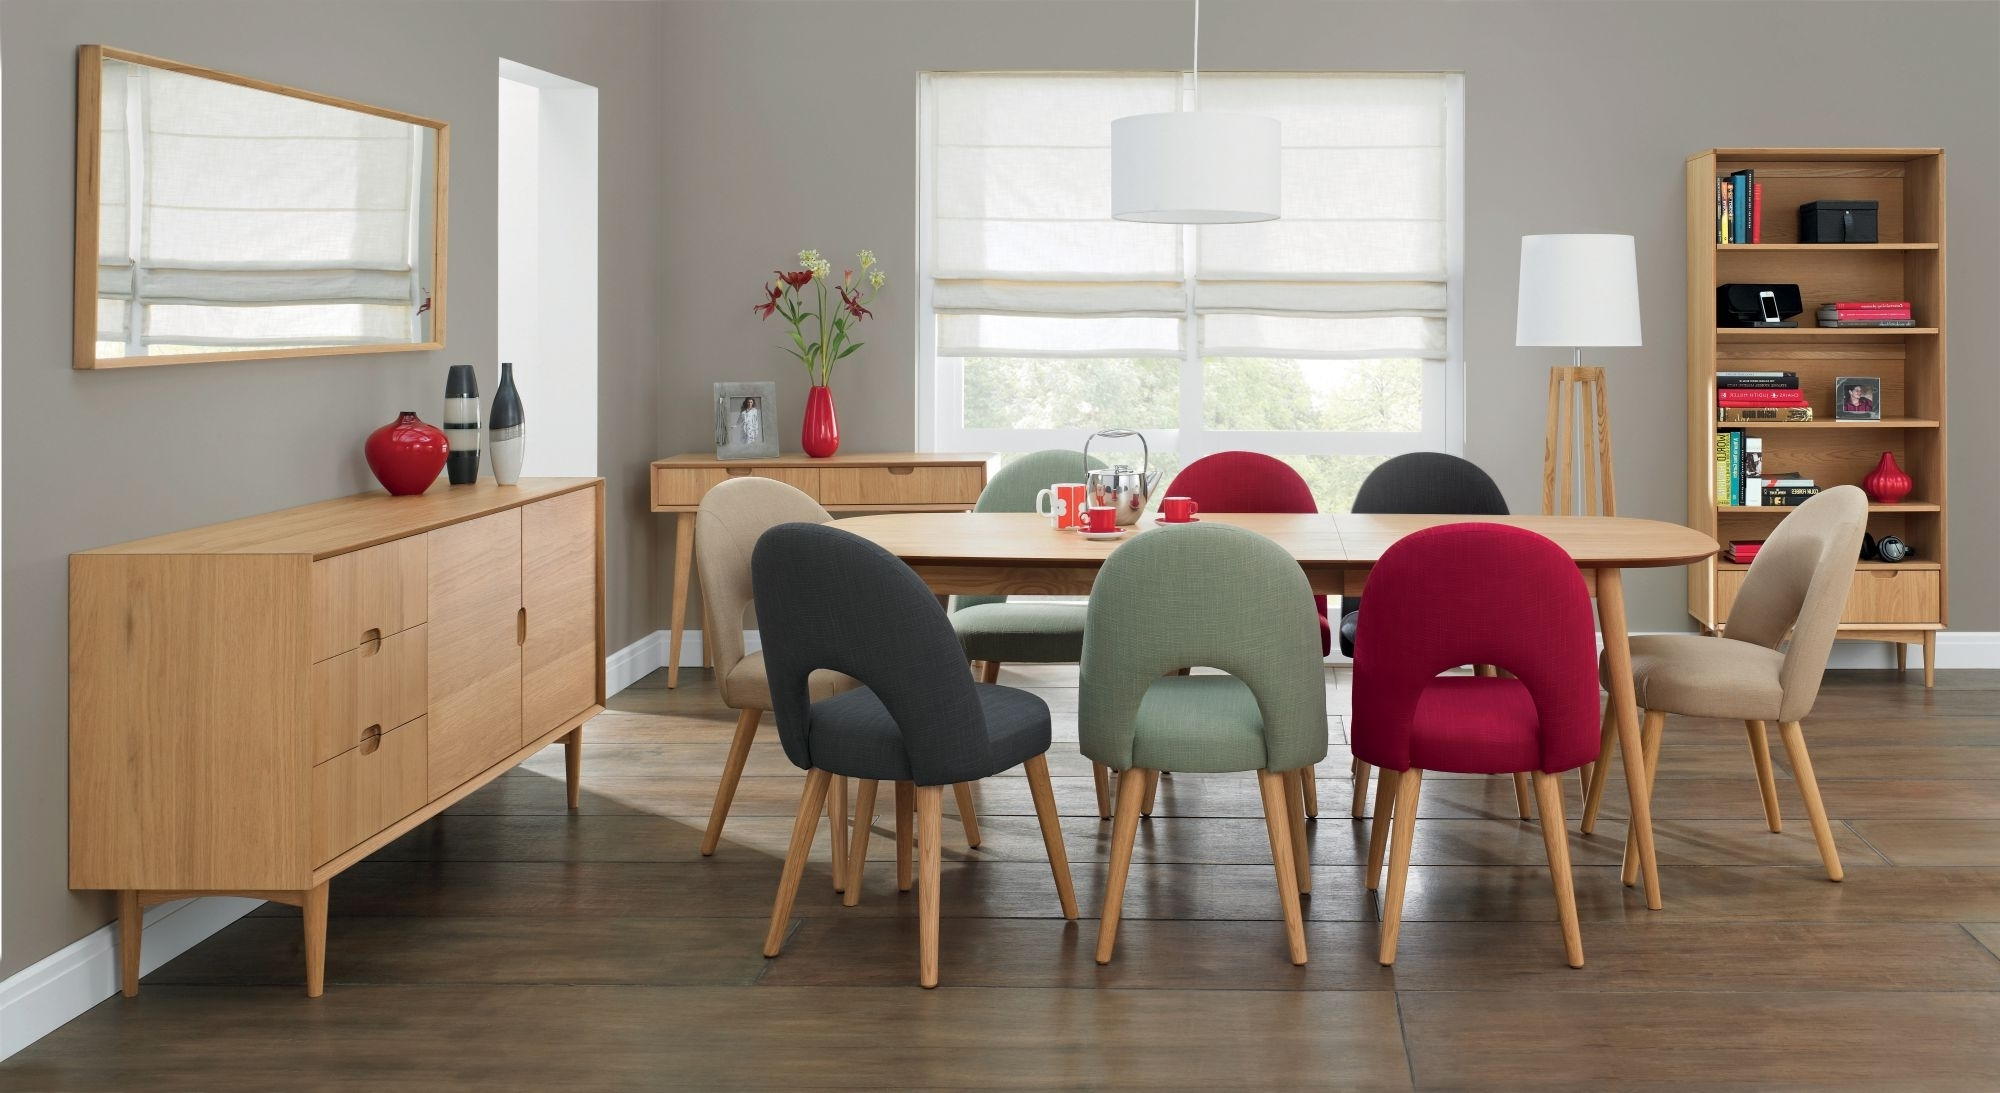 6 Seat Dining Tables With Regard To Most Recently Released Bentley Designs Oslo Oak 6 Seater Dining Table & 6 Stone Fabric (View 12 of 25)